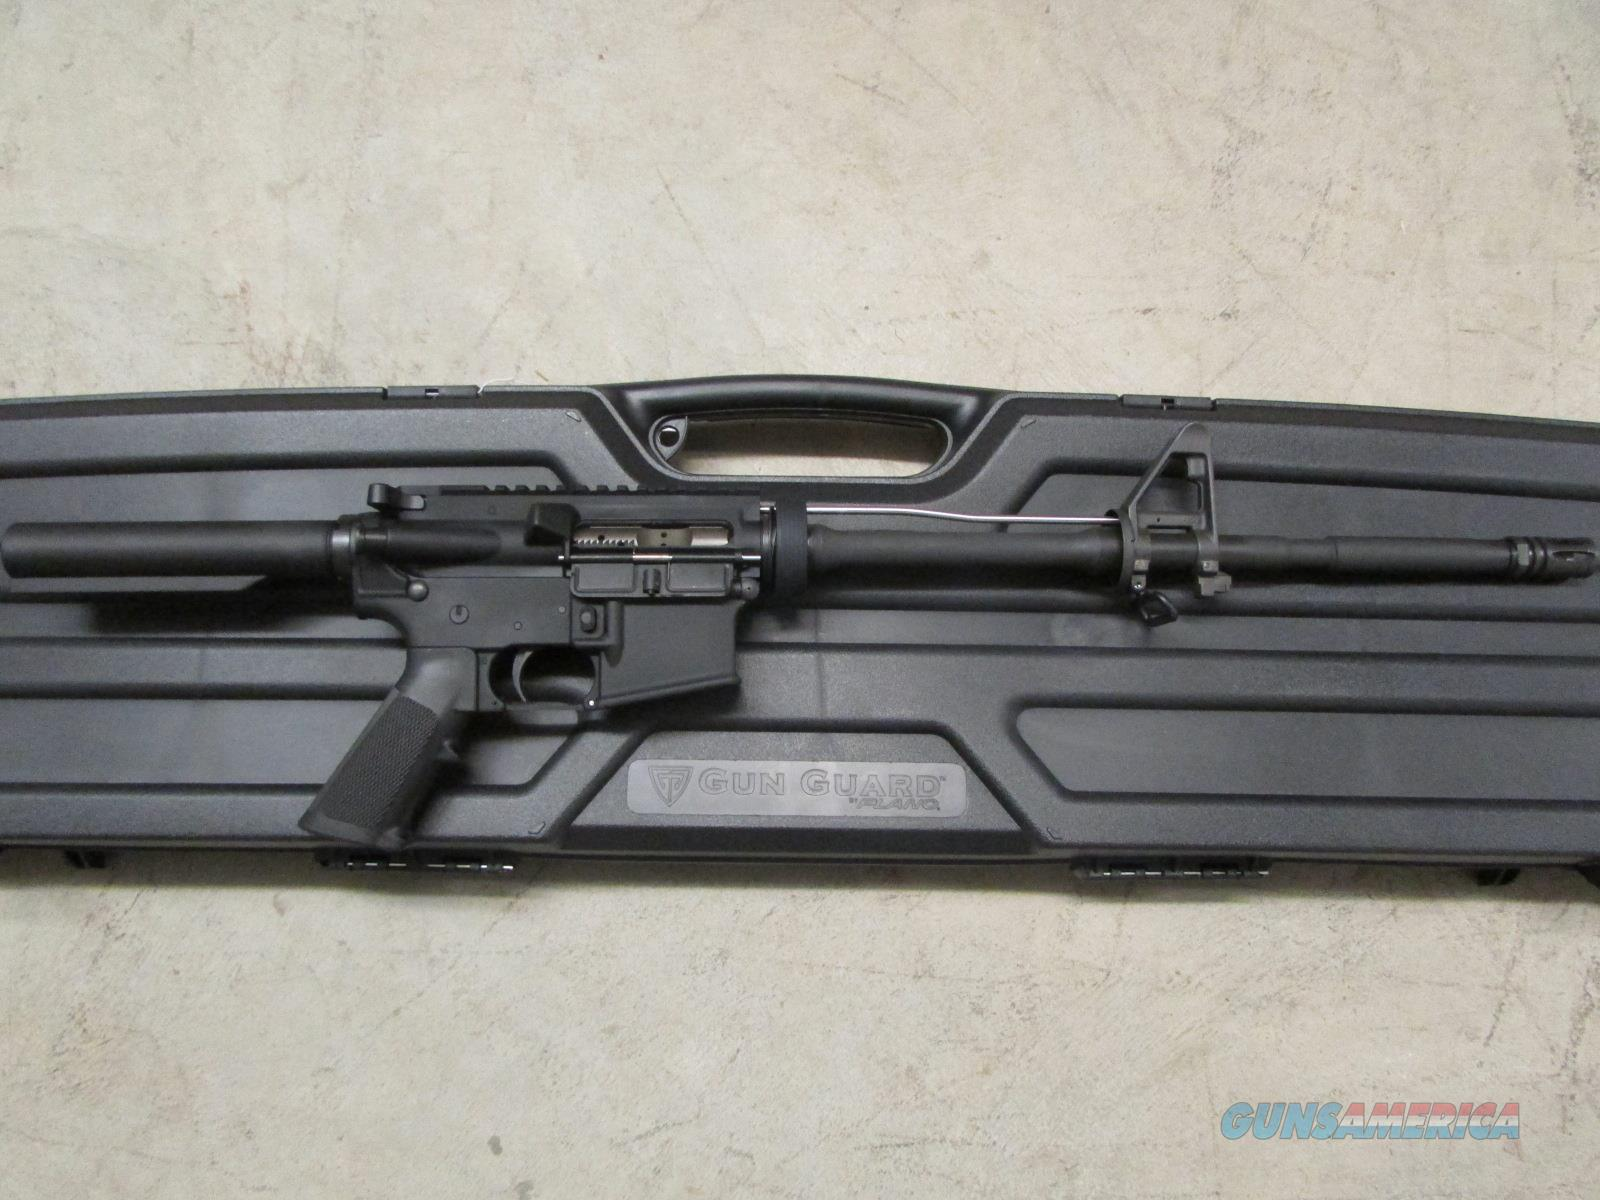 ANDERSON MANUFACTURING AR-15 M4 RIFLE CHASSIS 5.56 NATO/.223 REM.  Guns > Rifles > AR-15 Rifles - Small Manufacturers > Complete Rifle